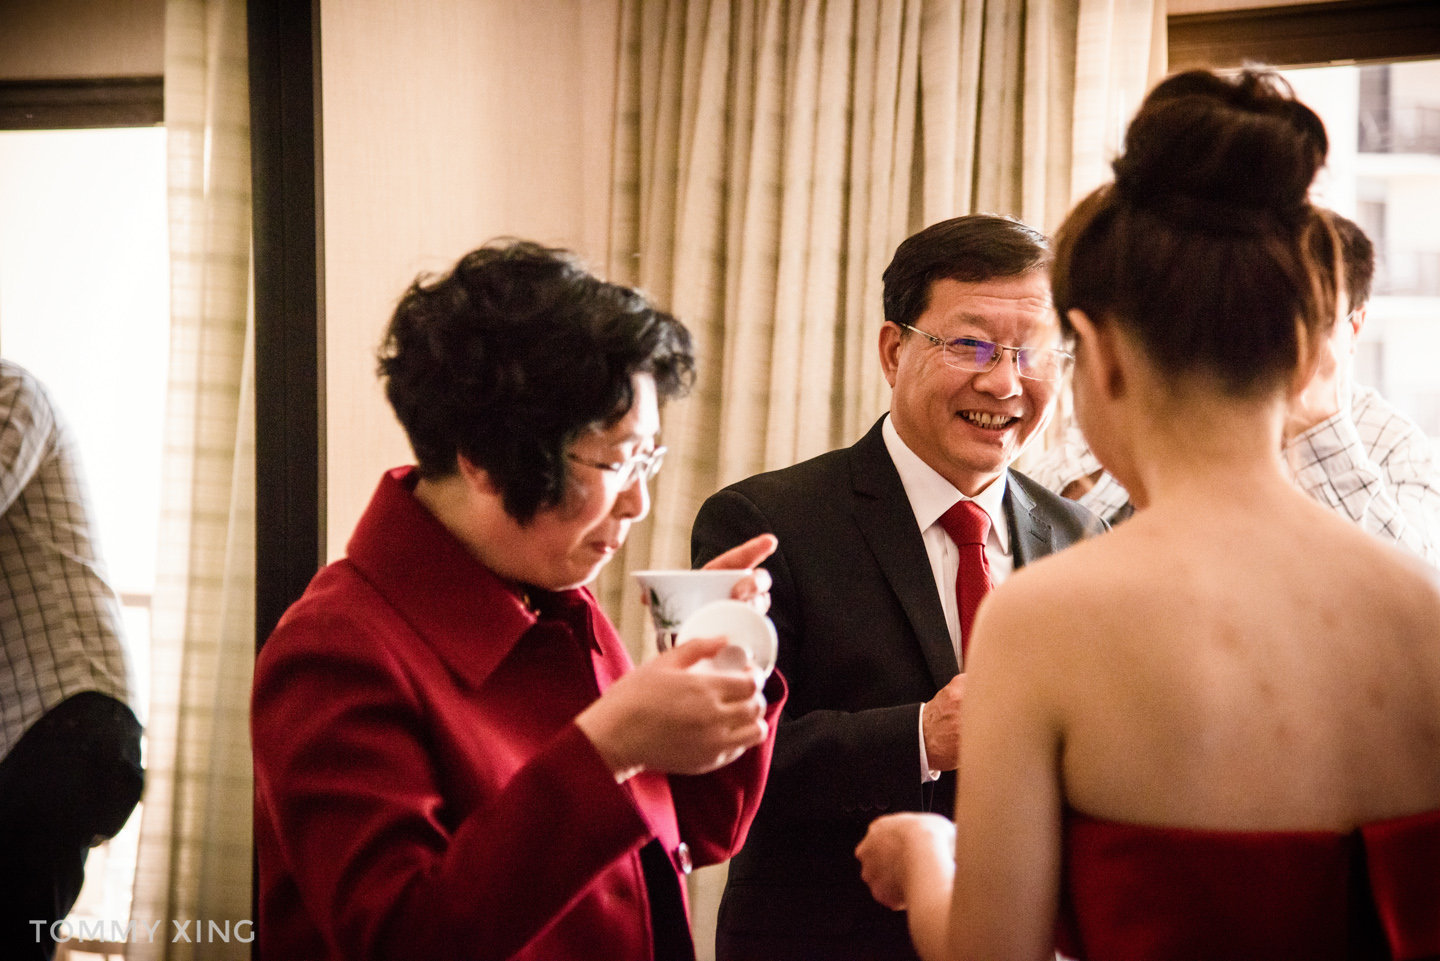 Los Angeles Wedding Photographer 洛杉矶婚礼婚纱摄影师 Tommy Xing-60.JPG